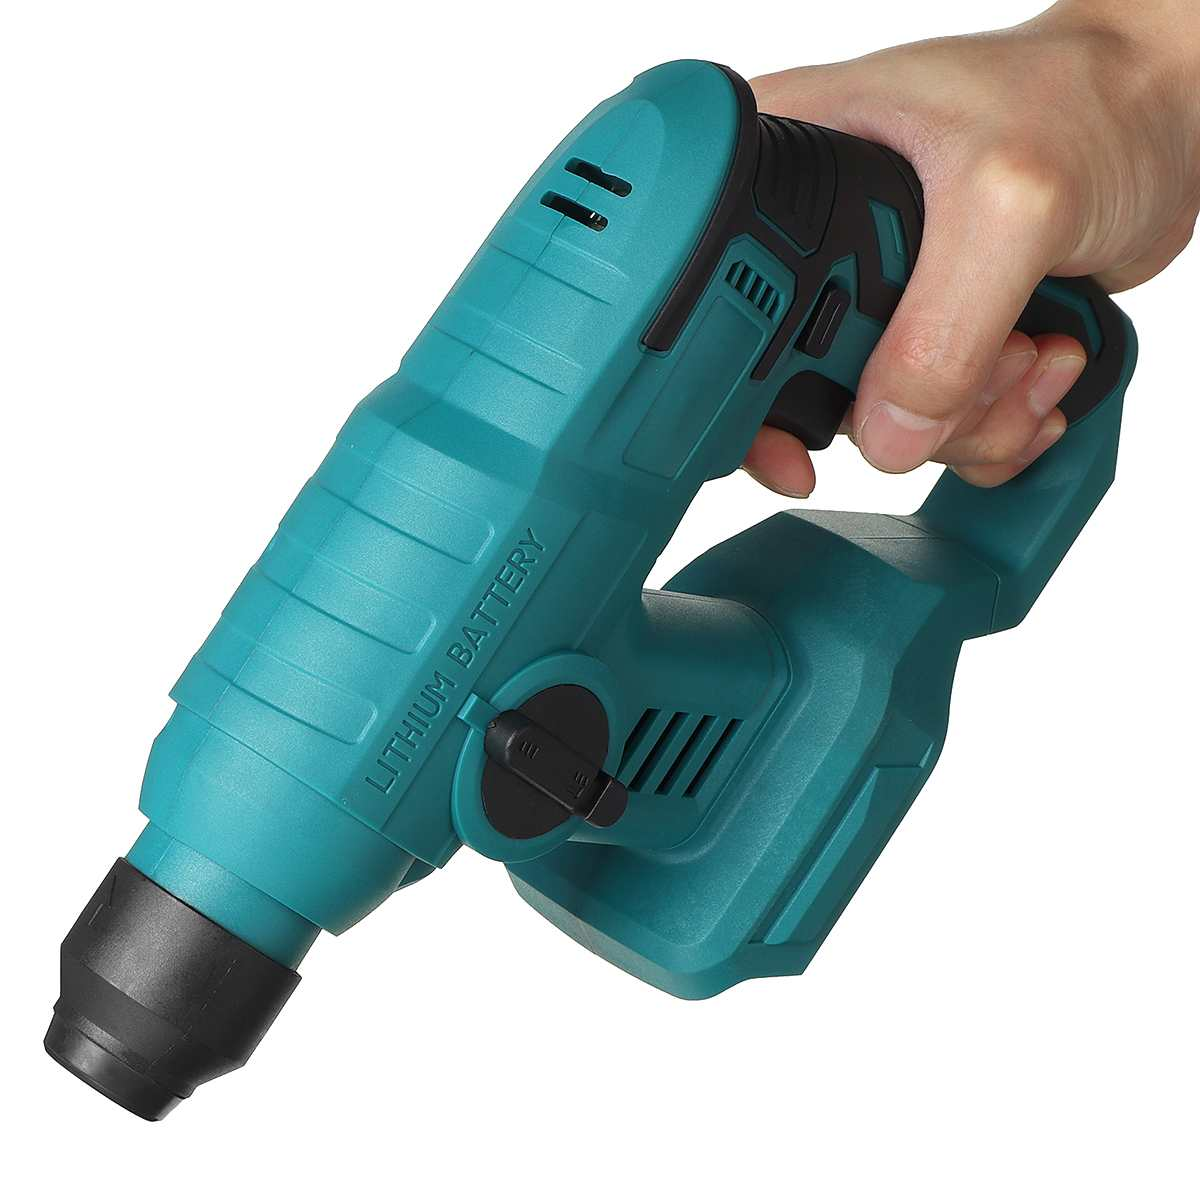 Tools : Rechargeable Brushless Cordless Electric Rotary Hammer Drill Multifunction Heavy Duty Impact Hammer Drill For 18V Makita Battery